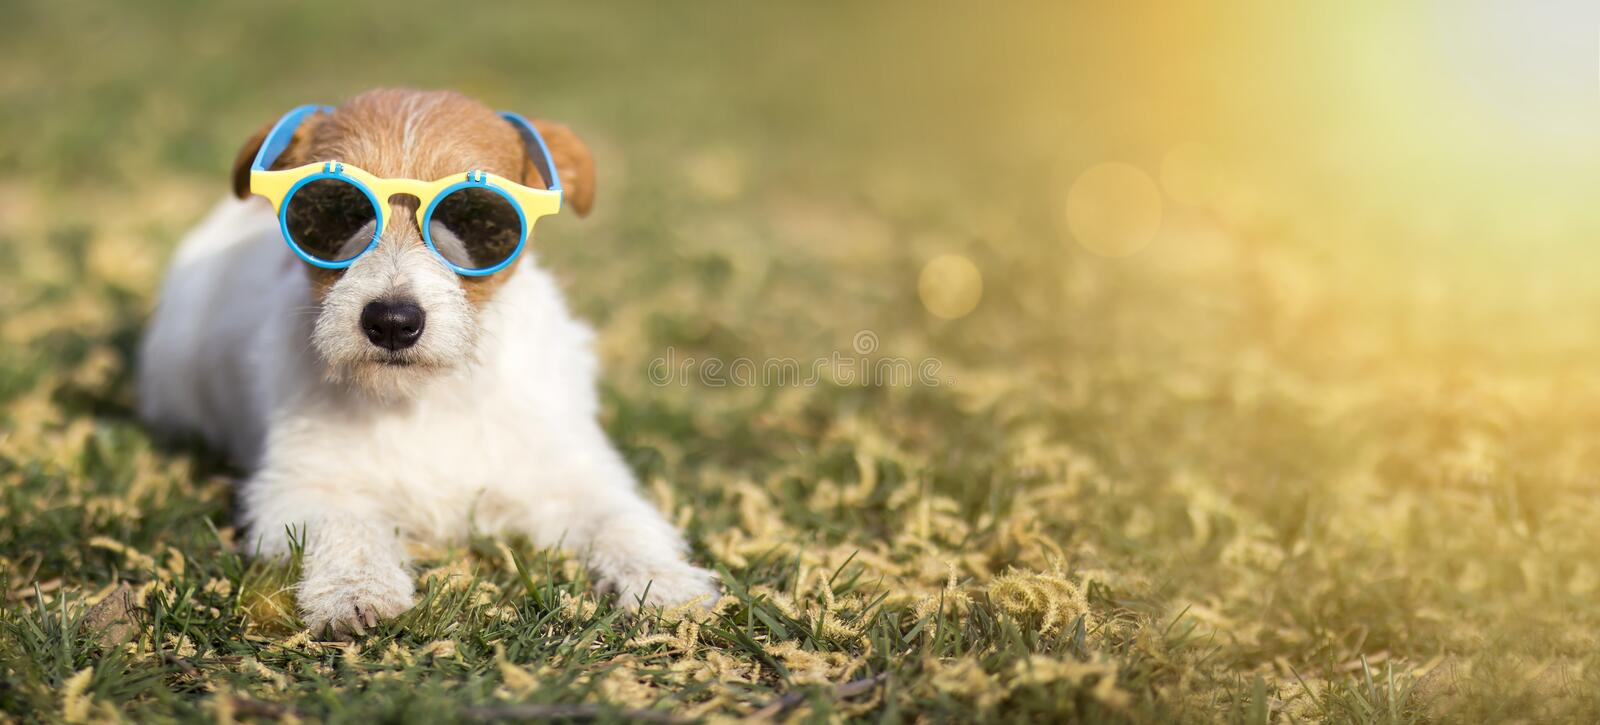 Happy funny pet dog wearing sunglasses, summer fun concept web banner stock photo